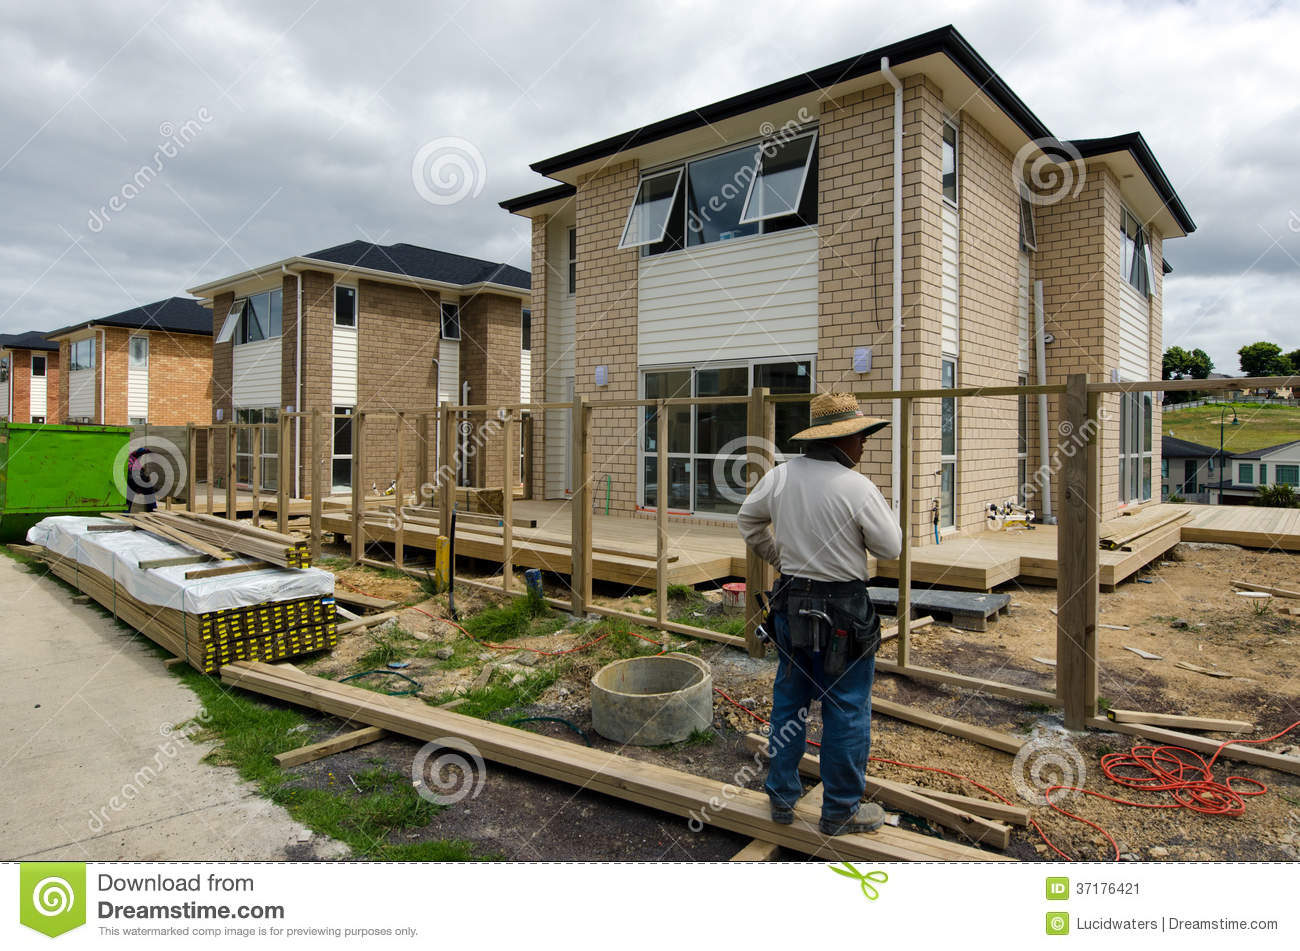 New zealand housing property and real estate market for New home builders prices